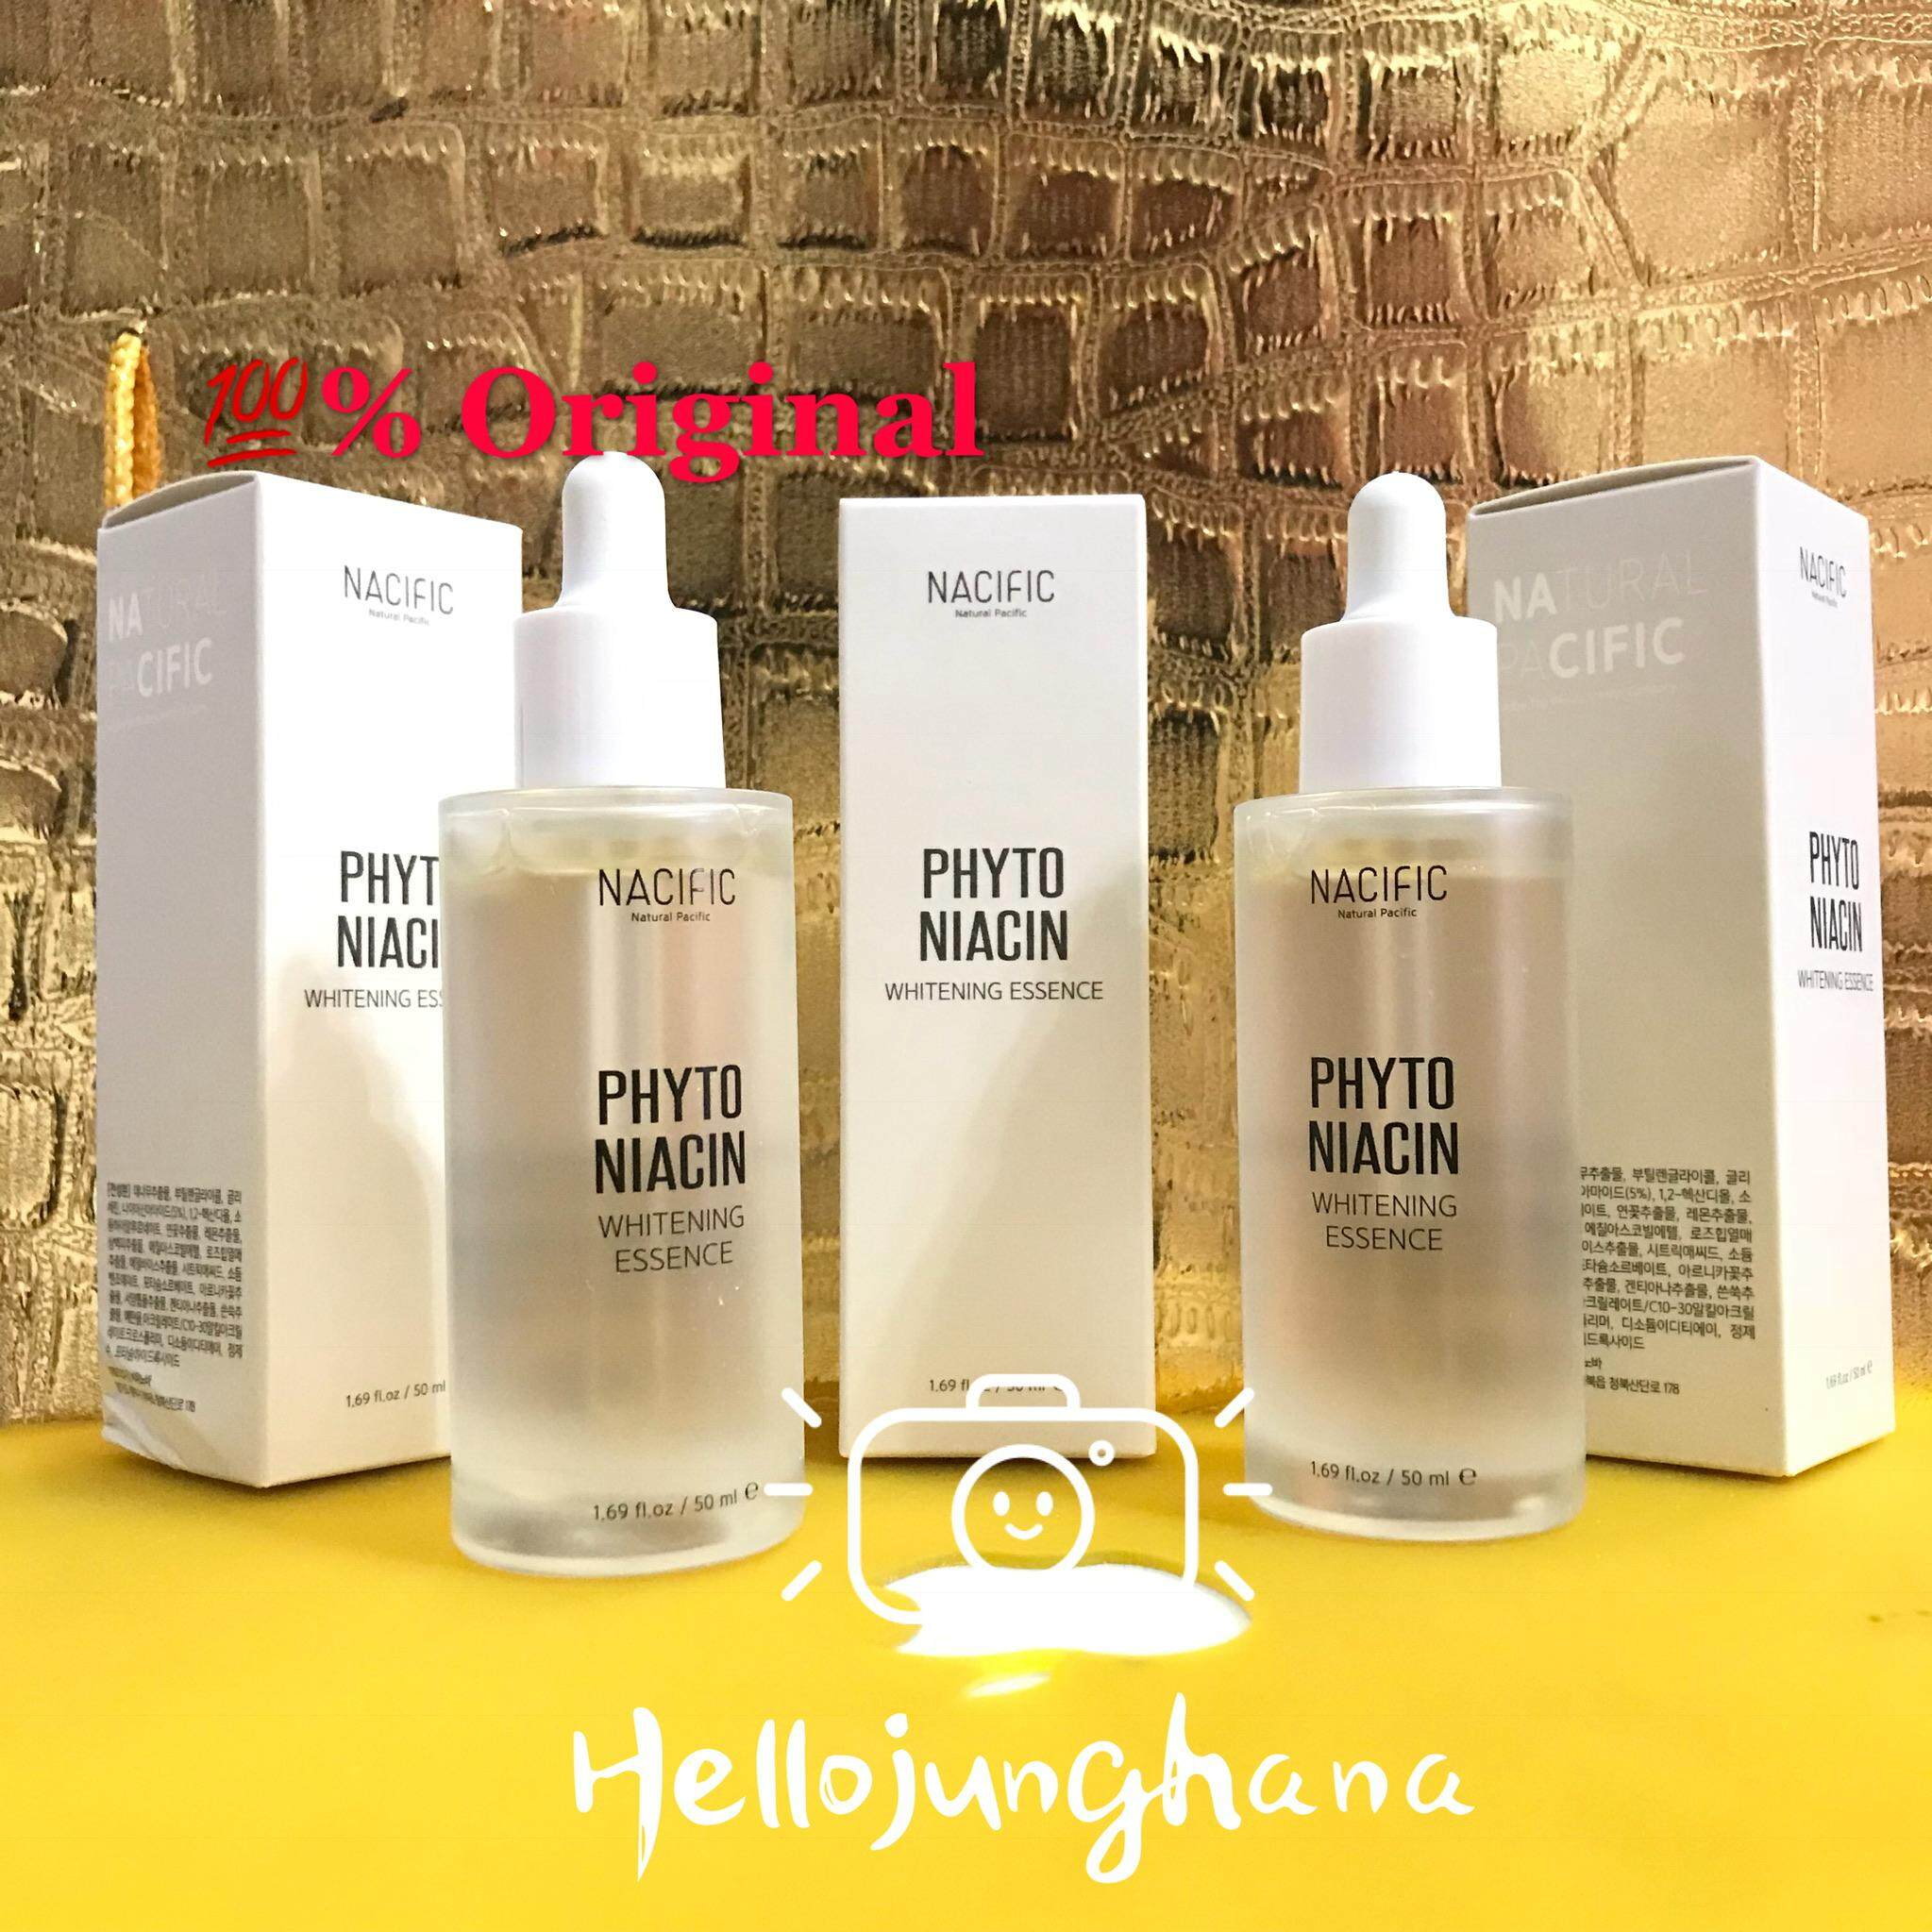 Sell Nacific Cheapest Best Quality My Store Natural Pacific Fresh Herb Origin Serum 50ml Renewal Myr 57 Phyto Niacin Whitening Essence Myr57